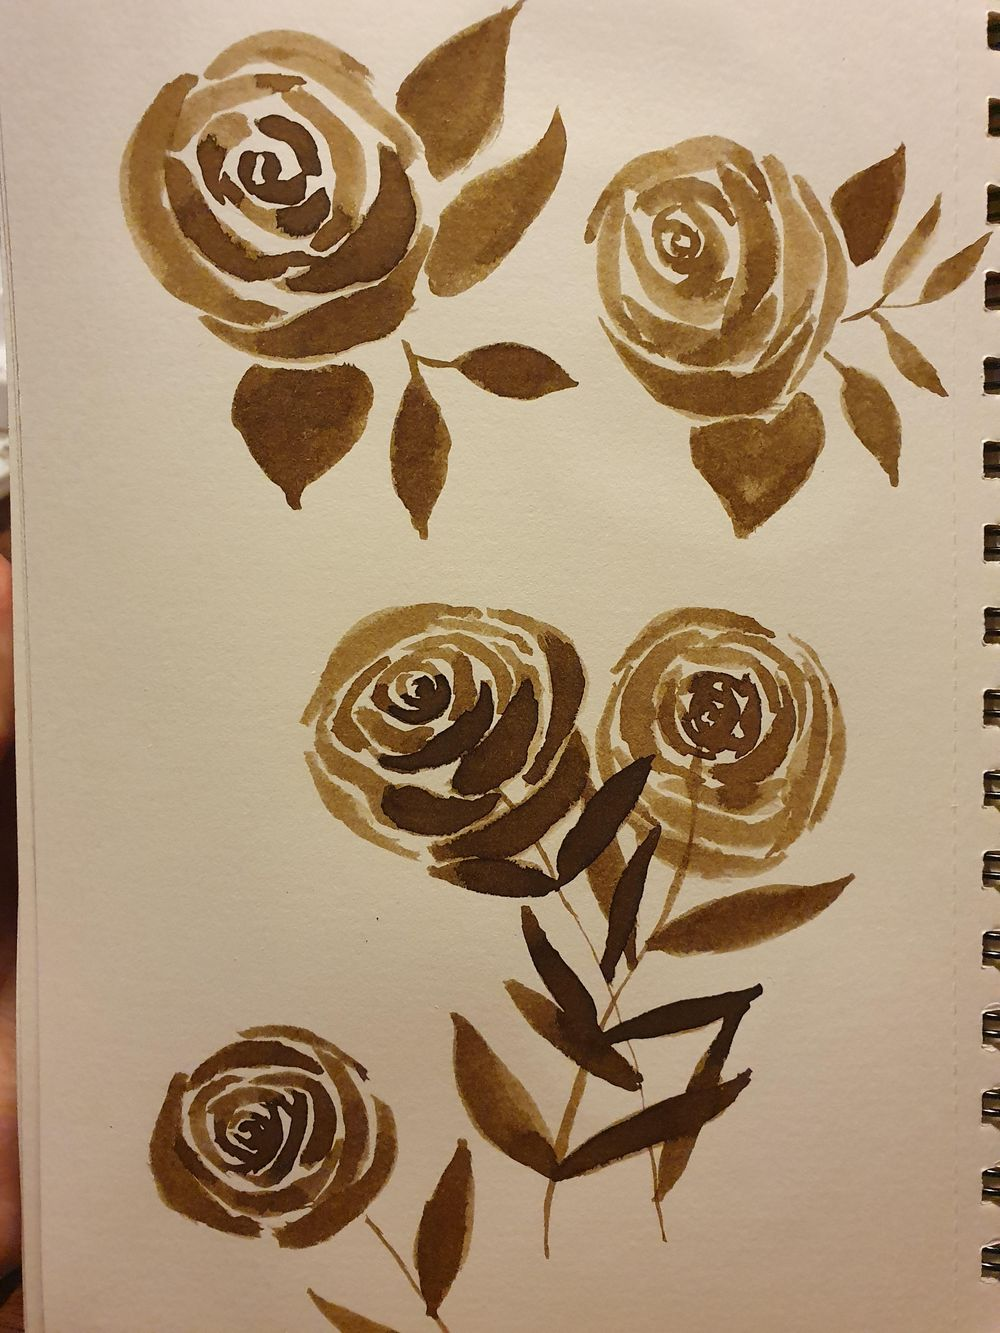 Sepia ink flowers - image 1 - student project